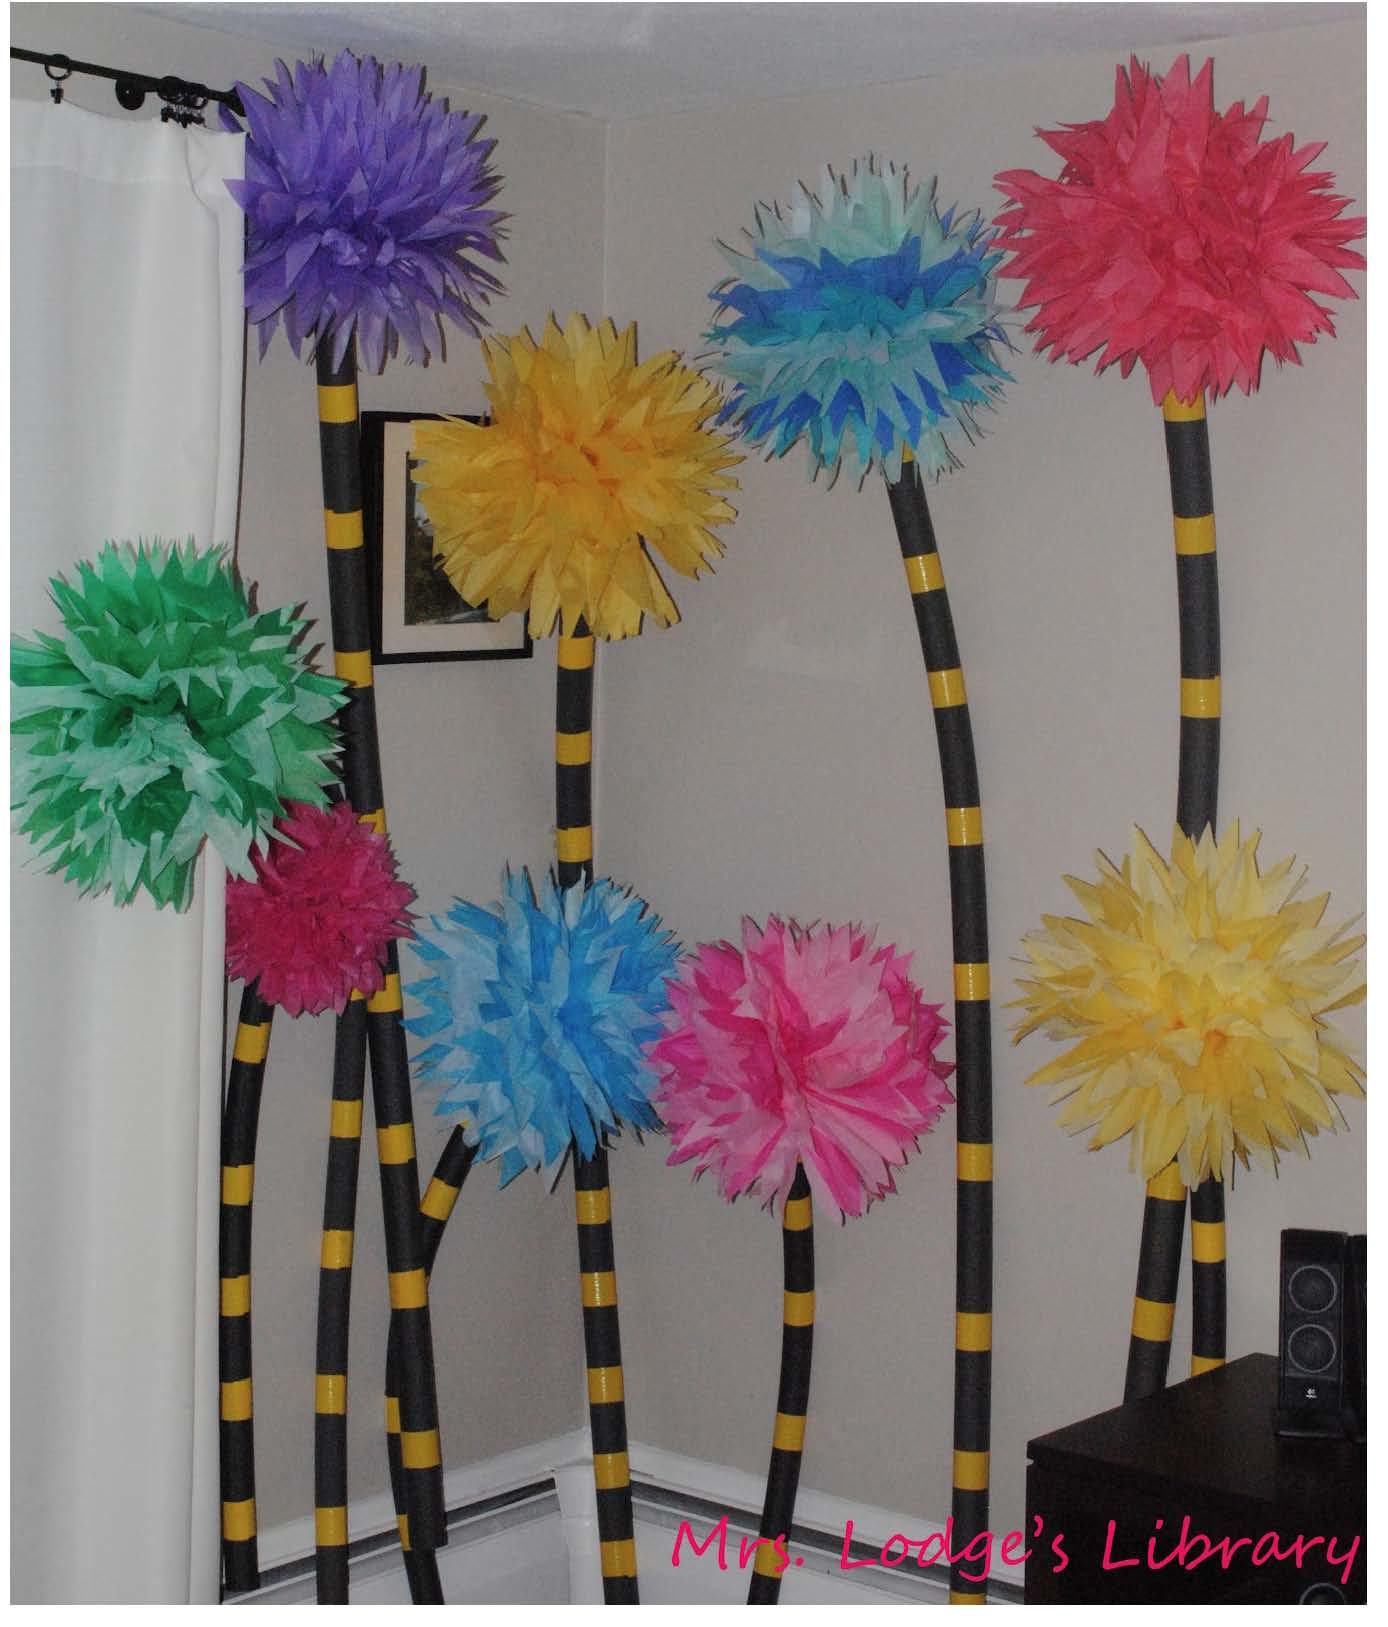 seuss activities, seuss lessons, lorax activities, lorax lessons, writing prompts for seuss, writing prompts for lorax, writing prompts for march,  , lorax mustache template, spring bulletin boards, march bulletin boards, seuss bulletin boards, truffula pencils, truffula trees, how to make a truffula tree, Lorax crafts, mustache activities